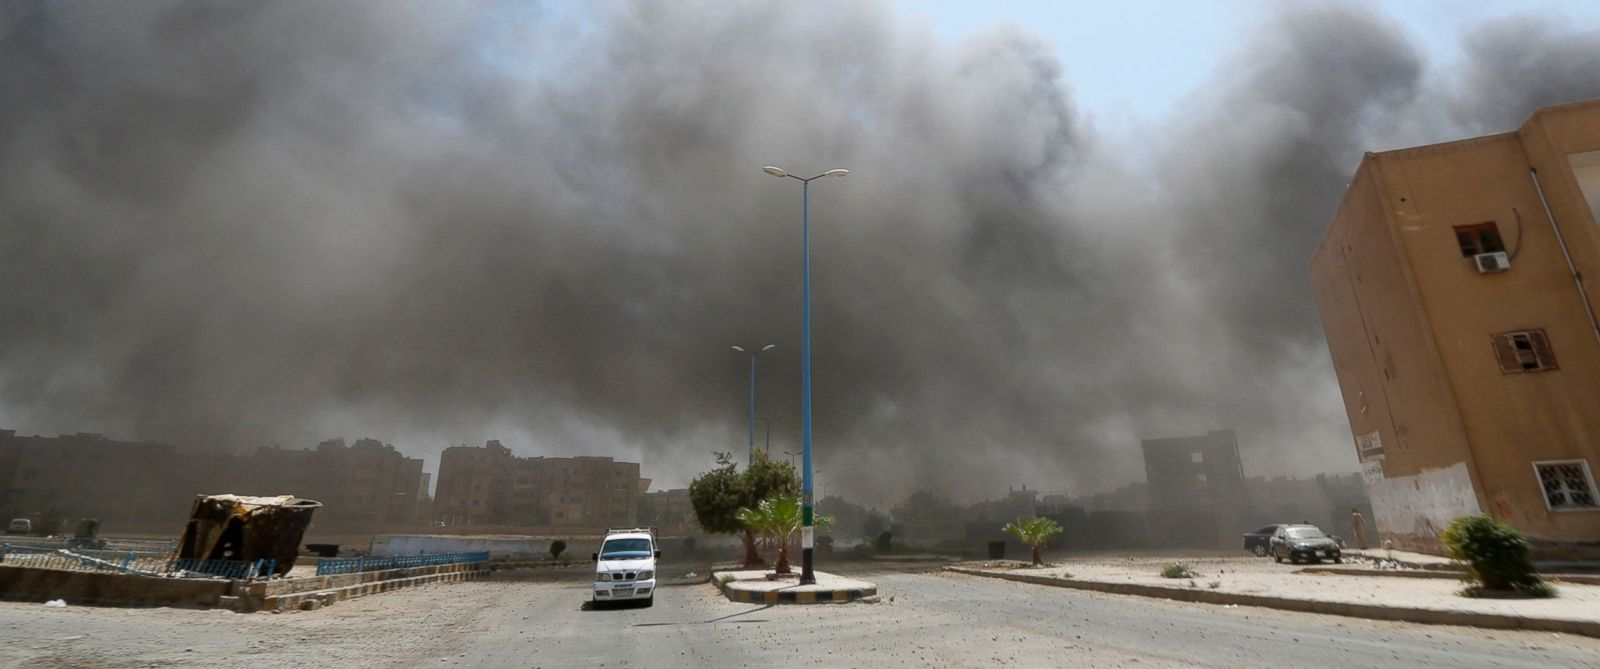 PHOTO: Smoke rises after shelling from forces loyal to President Bashar al-Assad